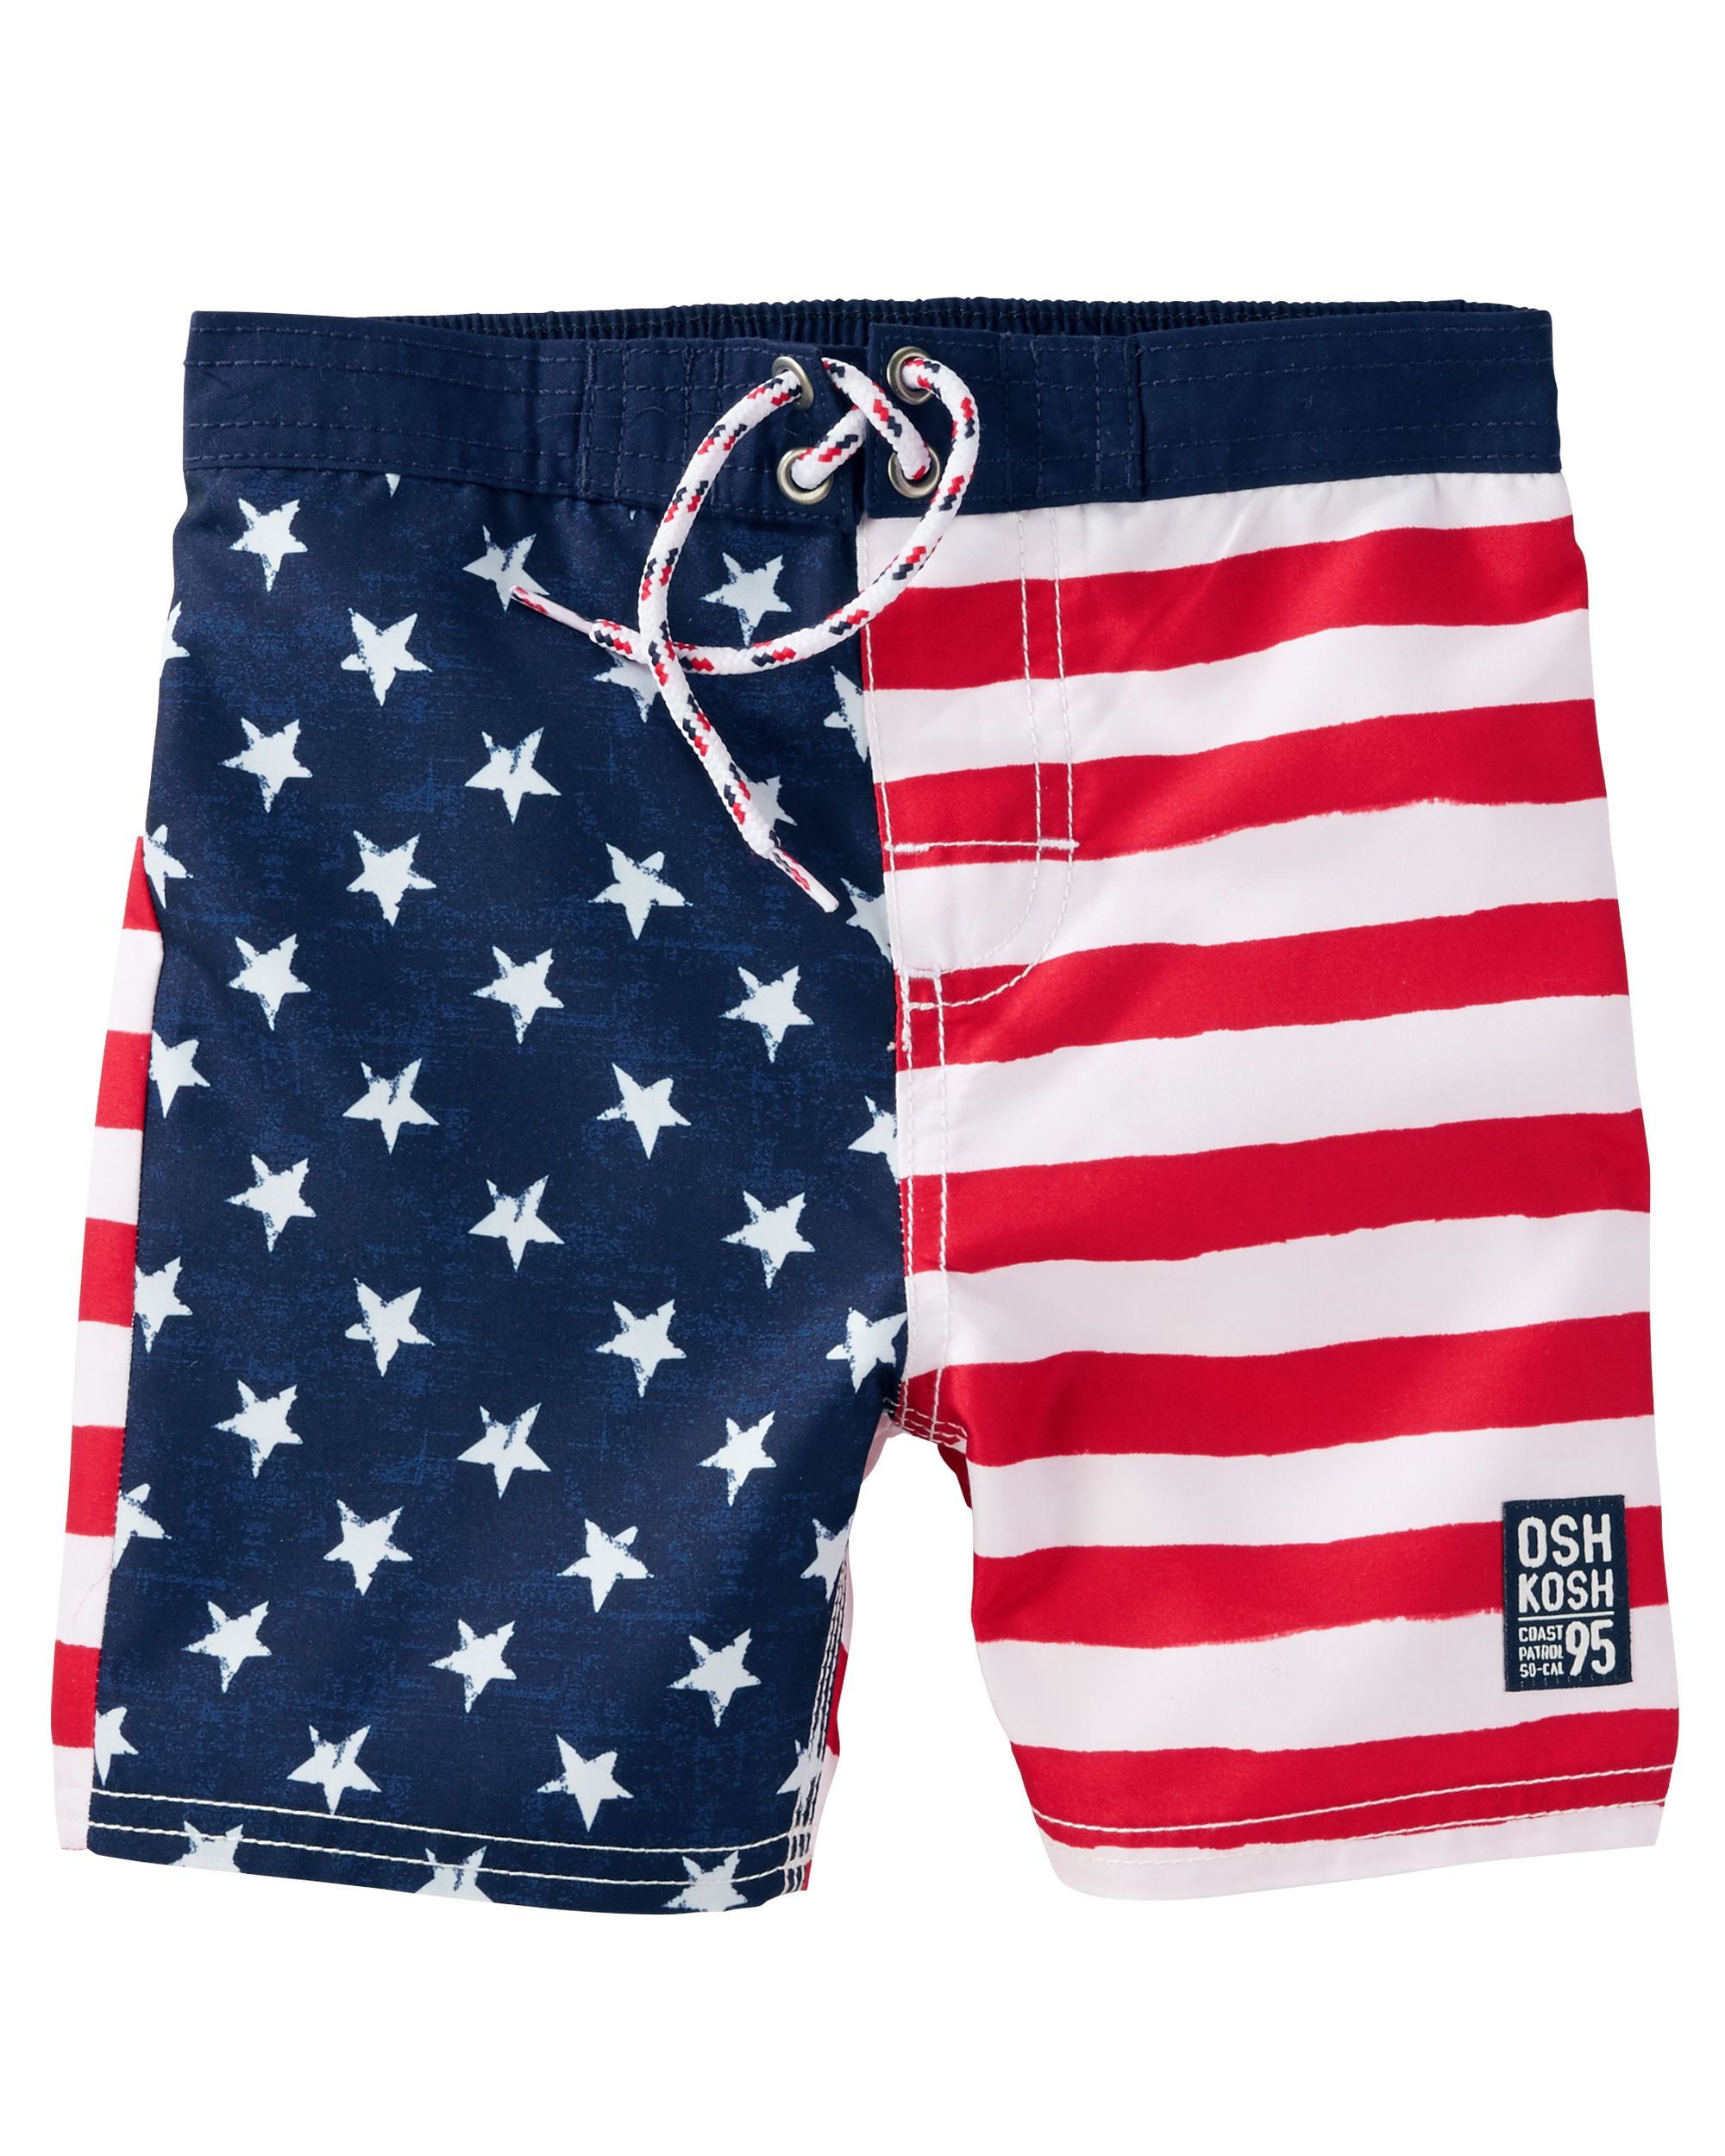 a7c348e642 Toddler Boy OshKosh Flag Print Swim Trunks | OshKosh.com